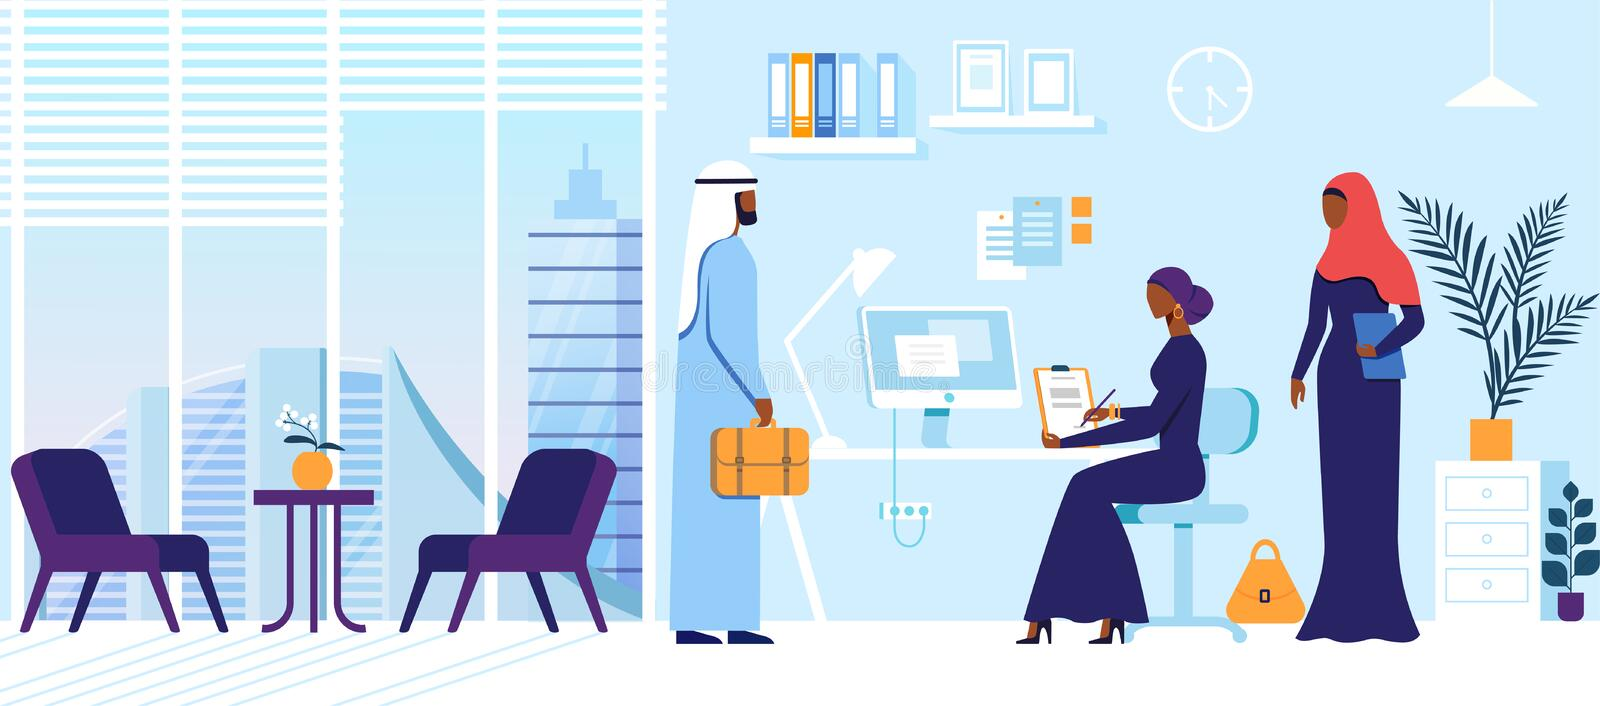 Arabic Male and Female Charcatres Meet in Office. Business People Characters in Arabic Dresses in Office. Man with Suitcase Stand at Table with Woman in Abaya royalty free illustration